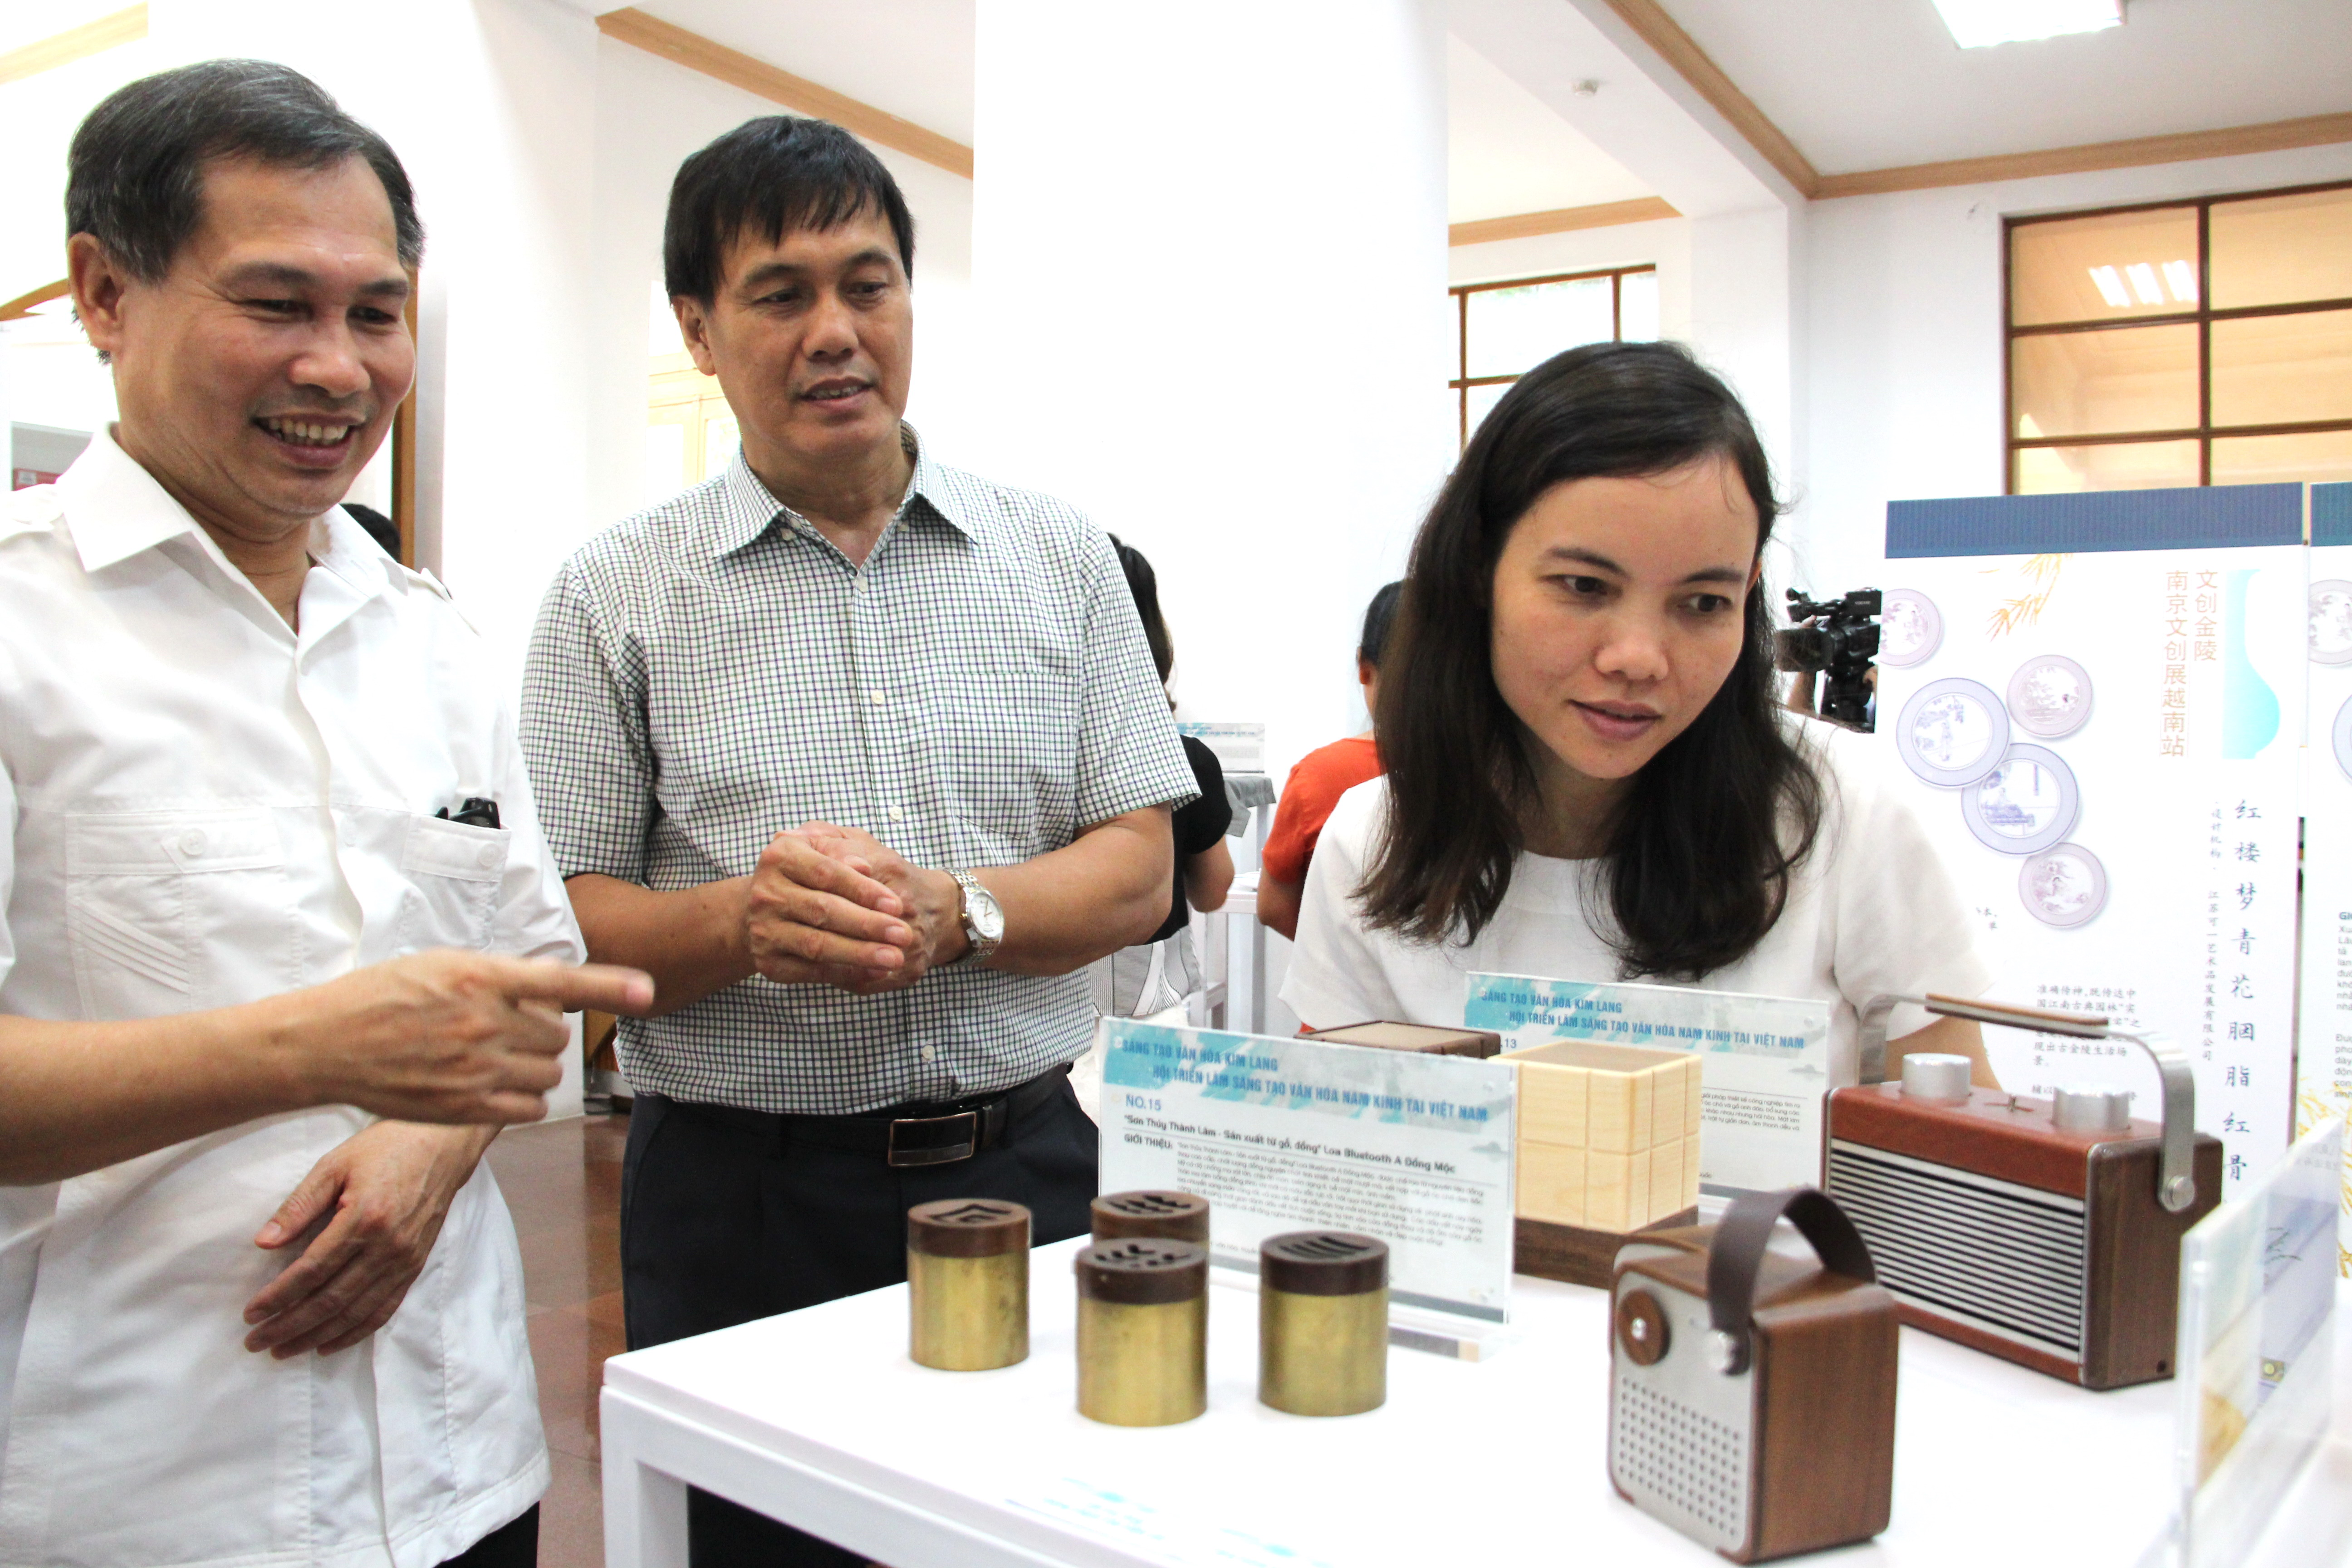 Chinese creative exhibition showcases cultural exchange between Vietnam, China